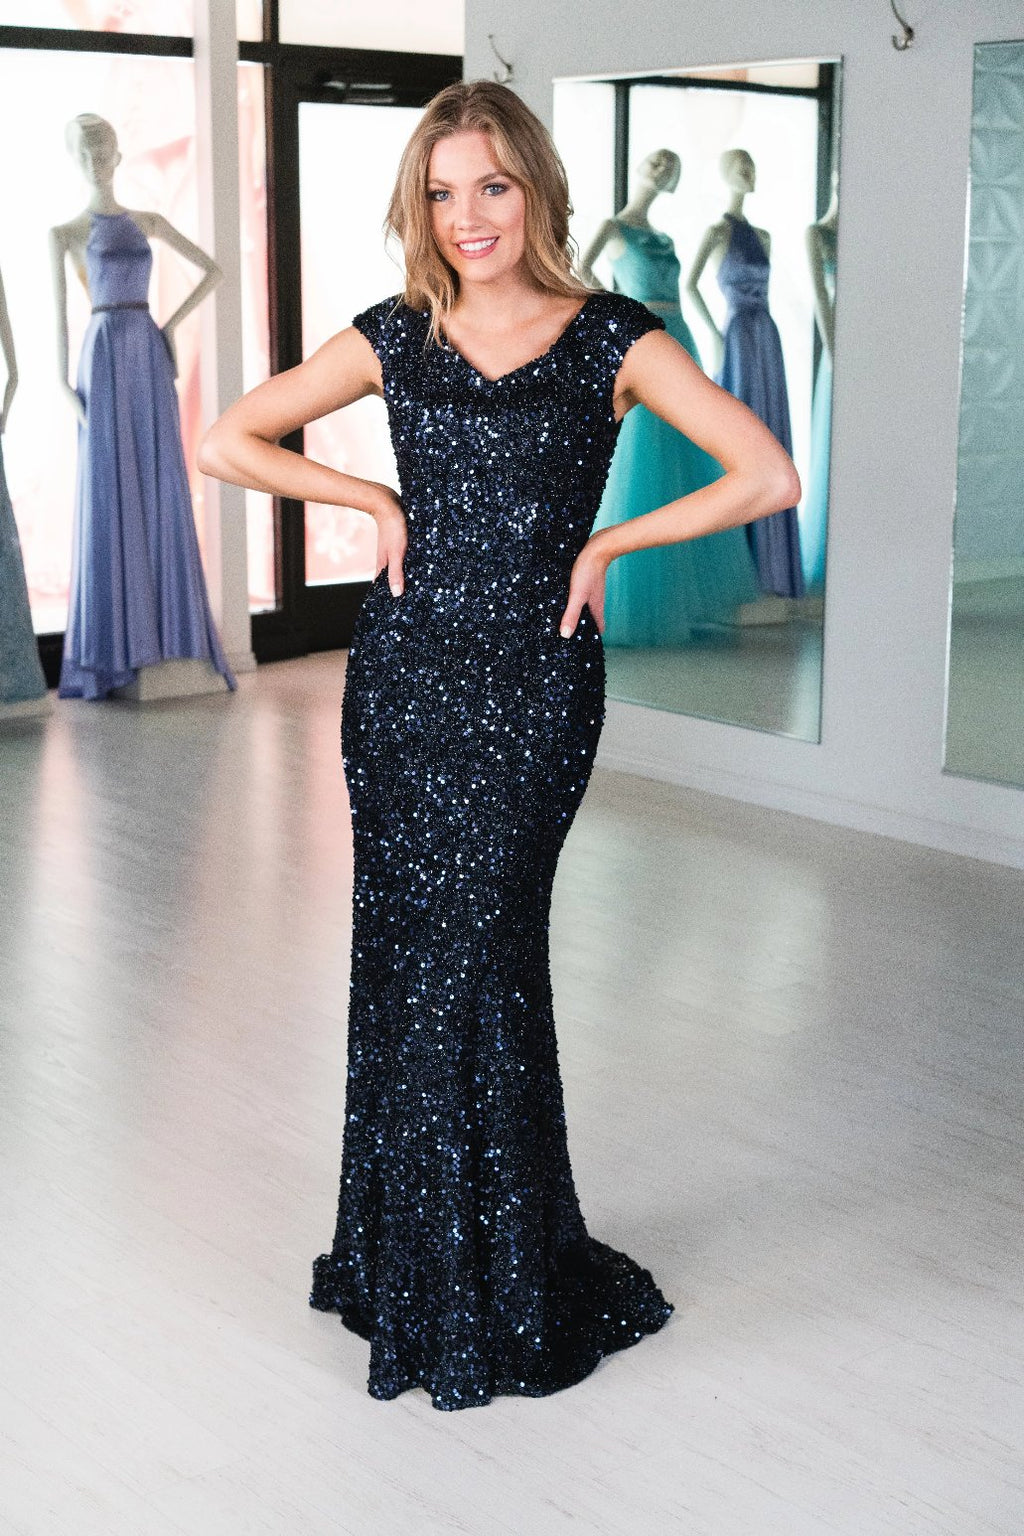 This MJS 20-502M fitted gown in navy features cap sleeves, a high back, and sequin beading throughout.